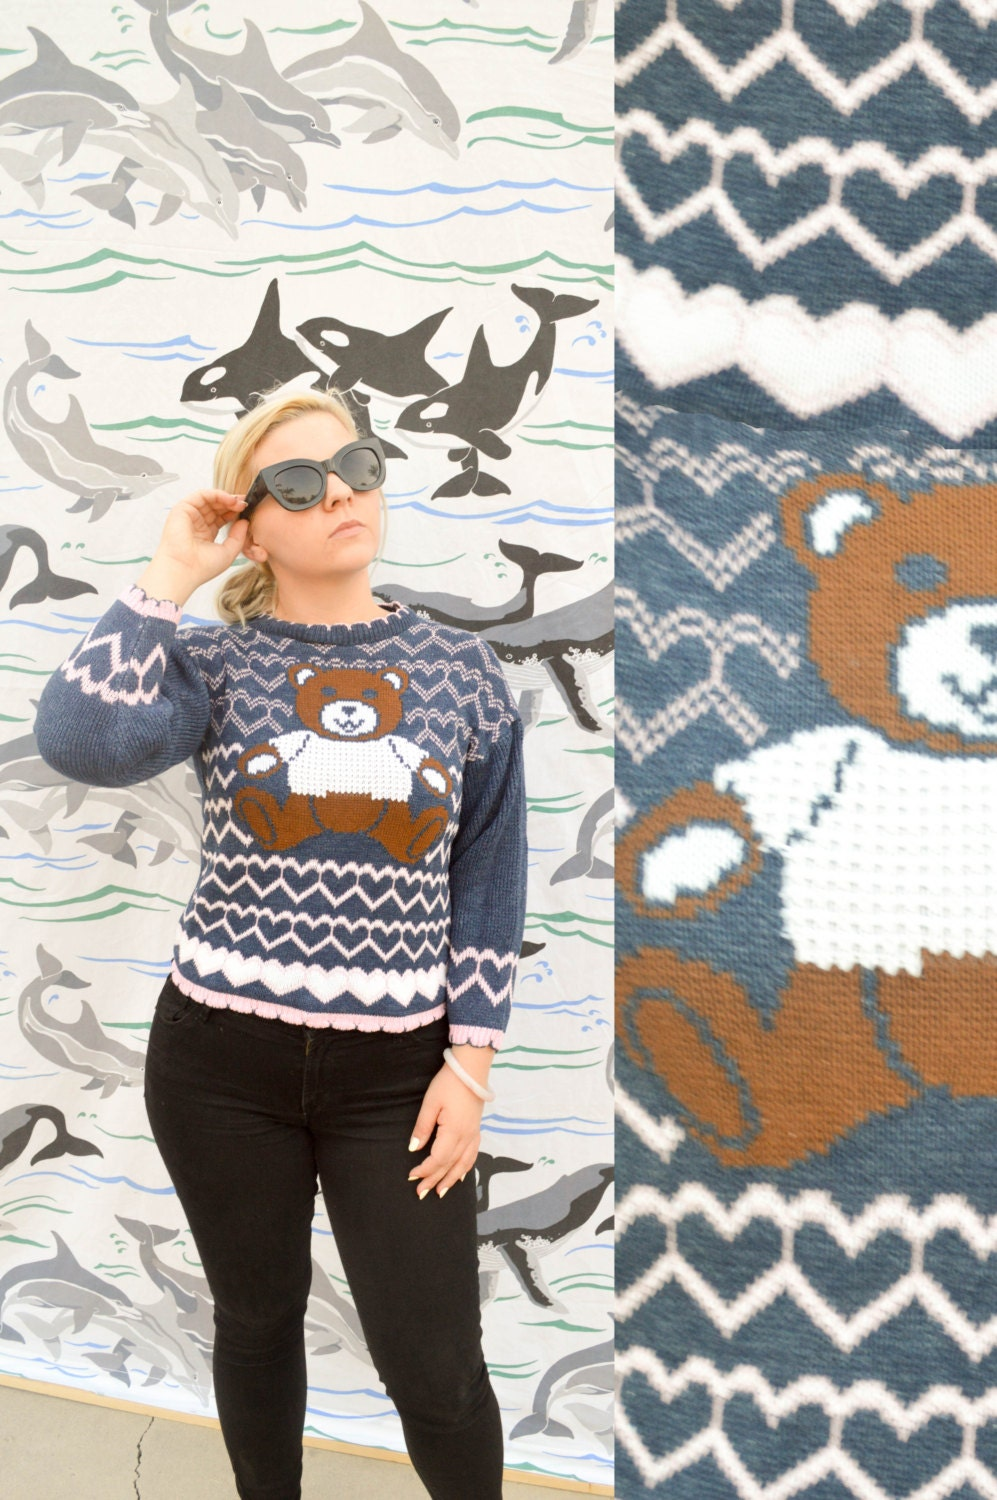 b0349581 TEDDY HEARTS Women's Kids Cute Knit Sweater Small Blue and ...